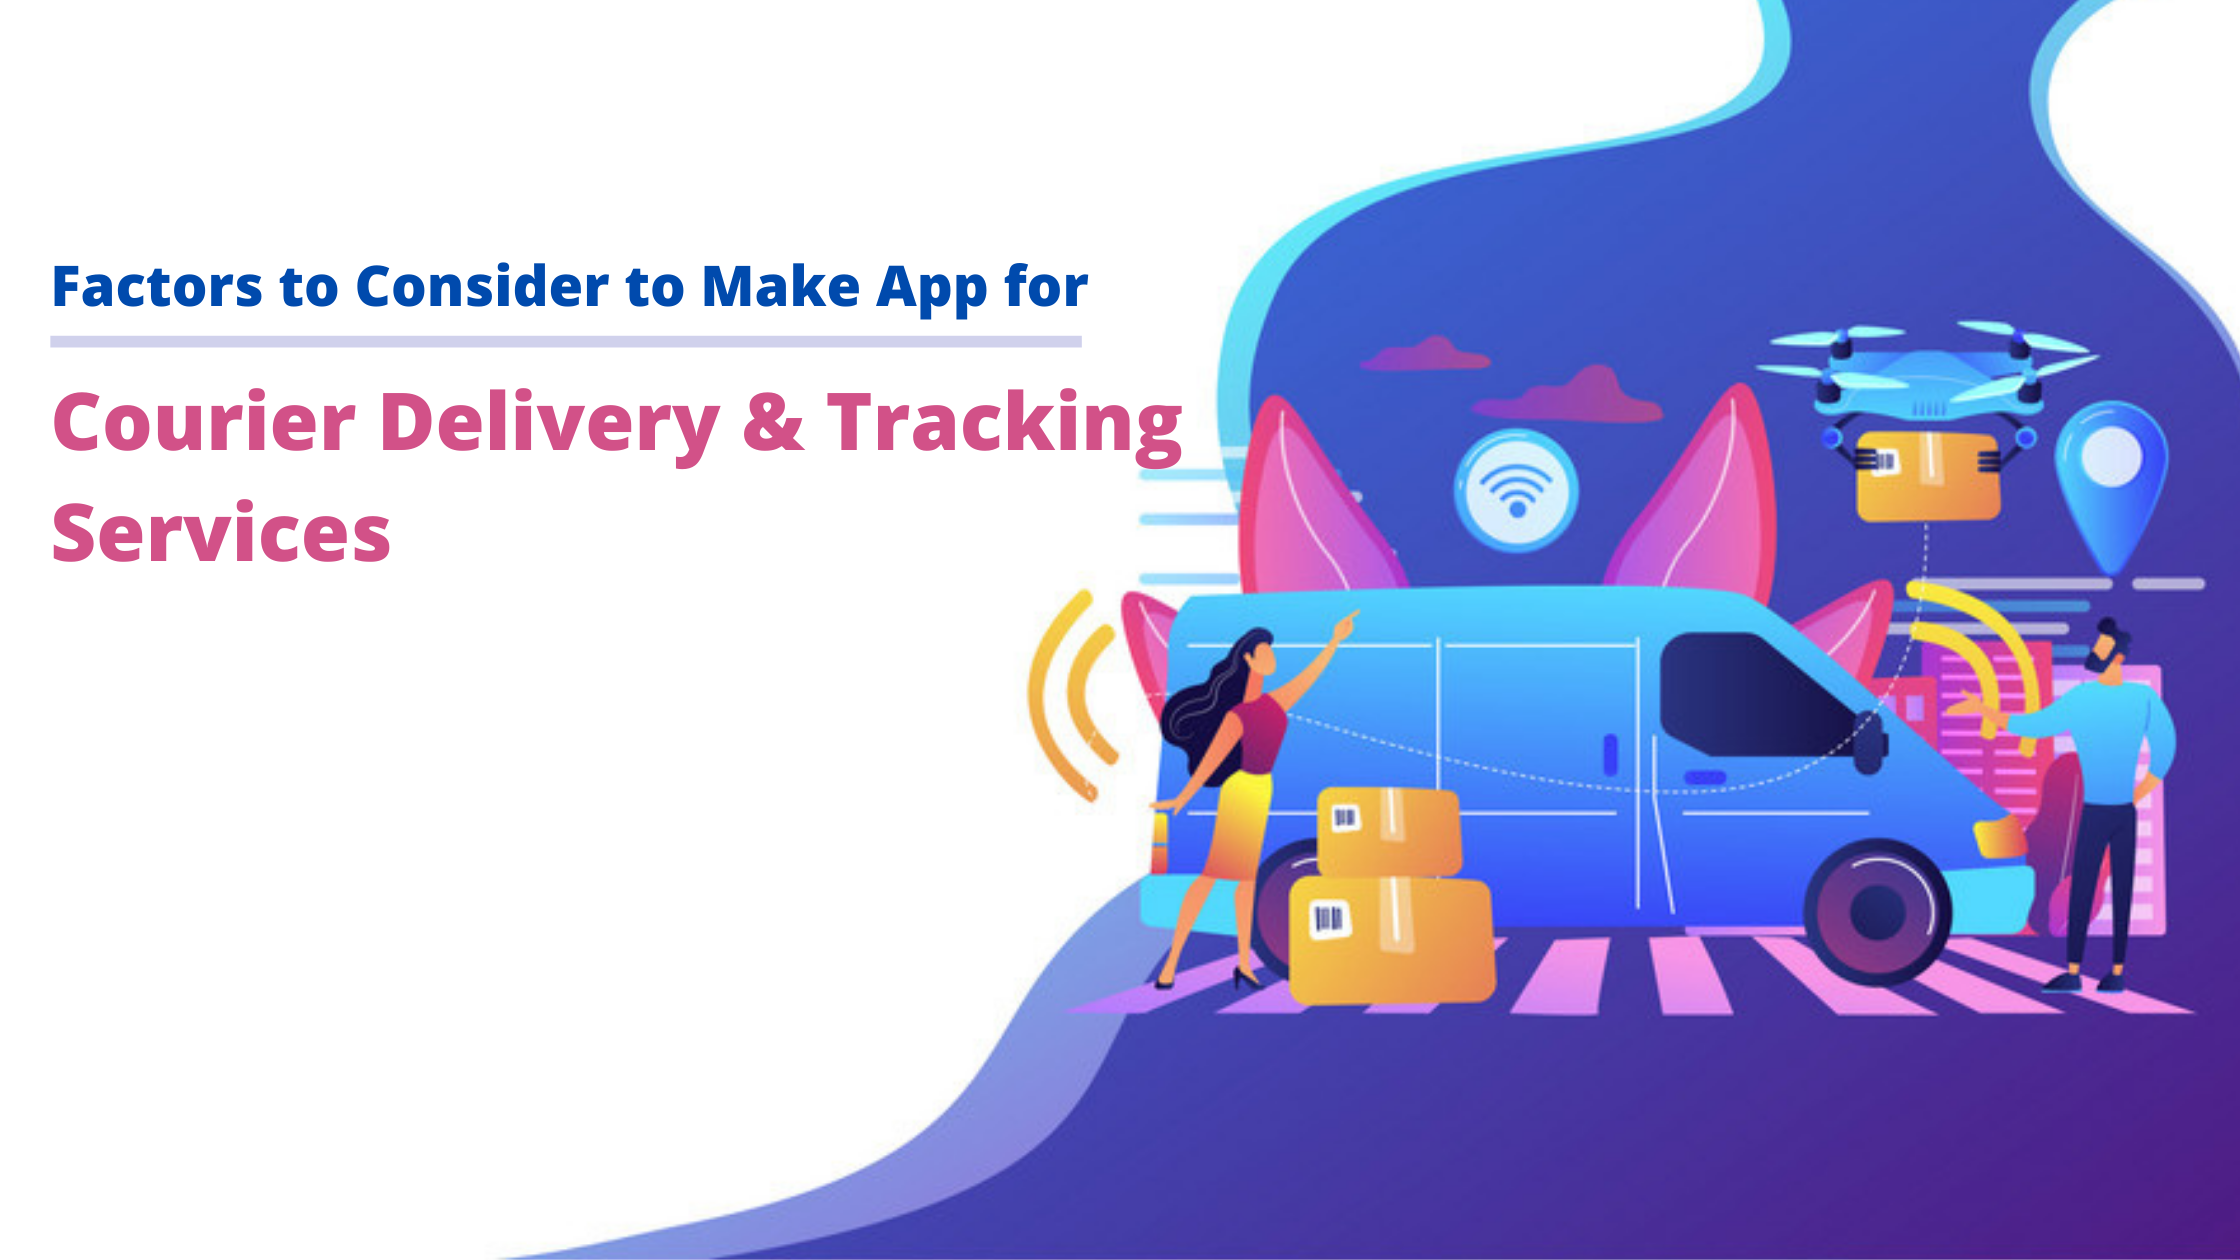 How to Make a Courier App for Courier Delivery &Tracking Services